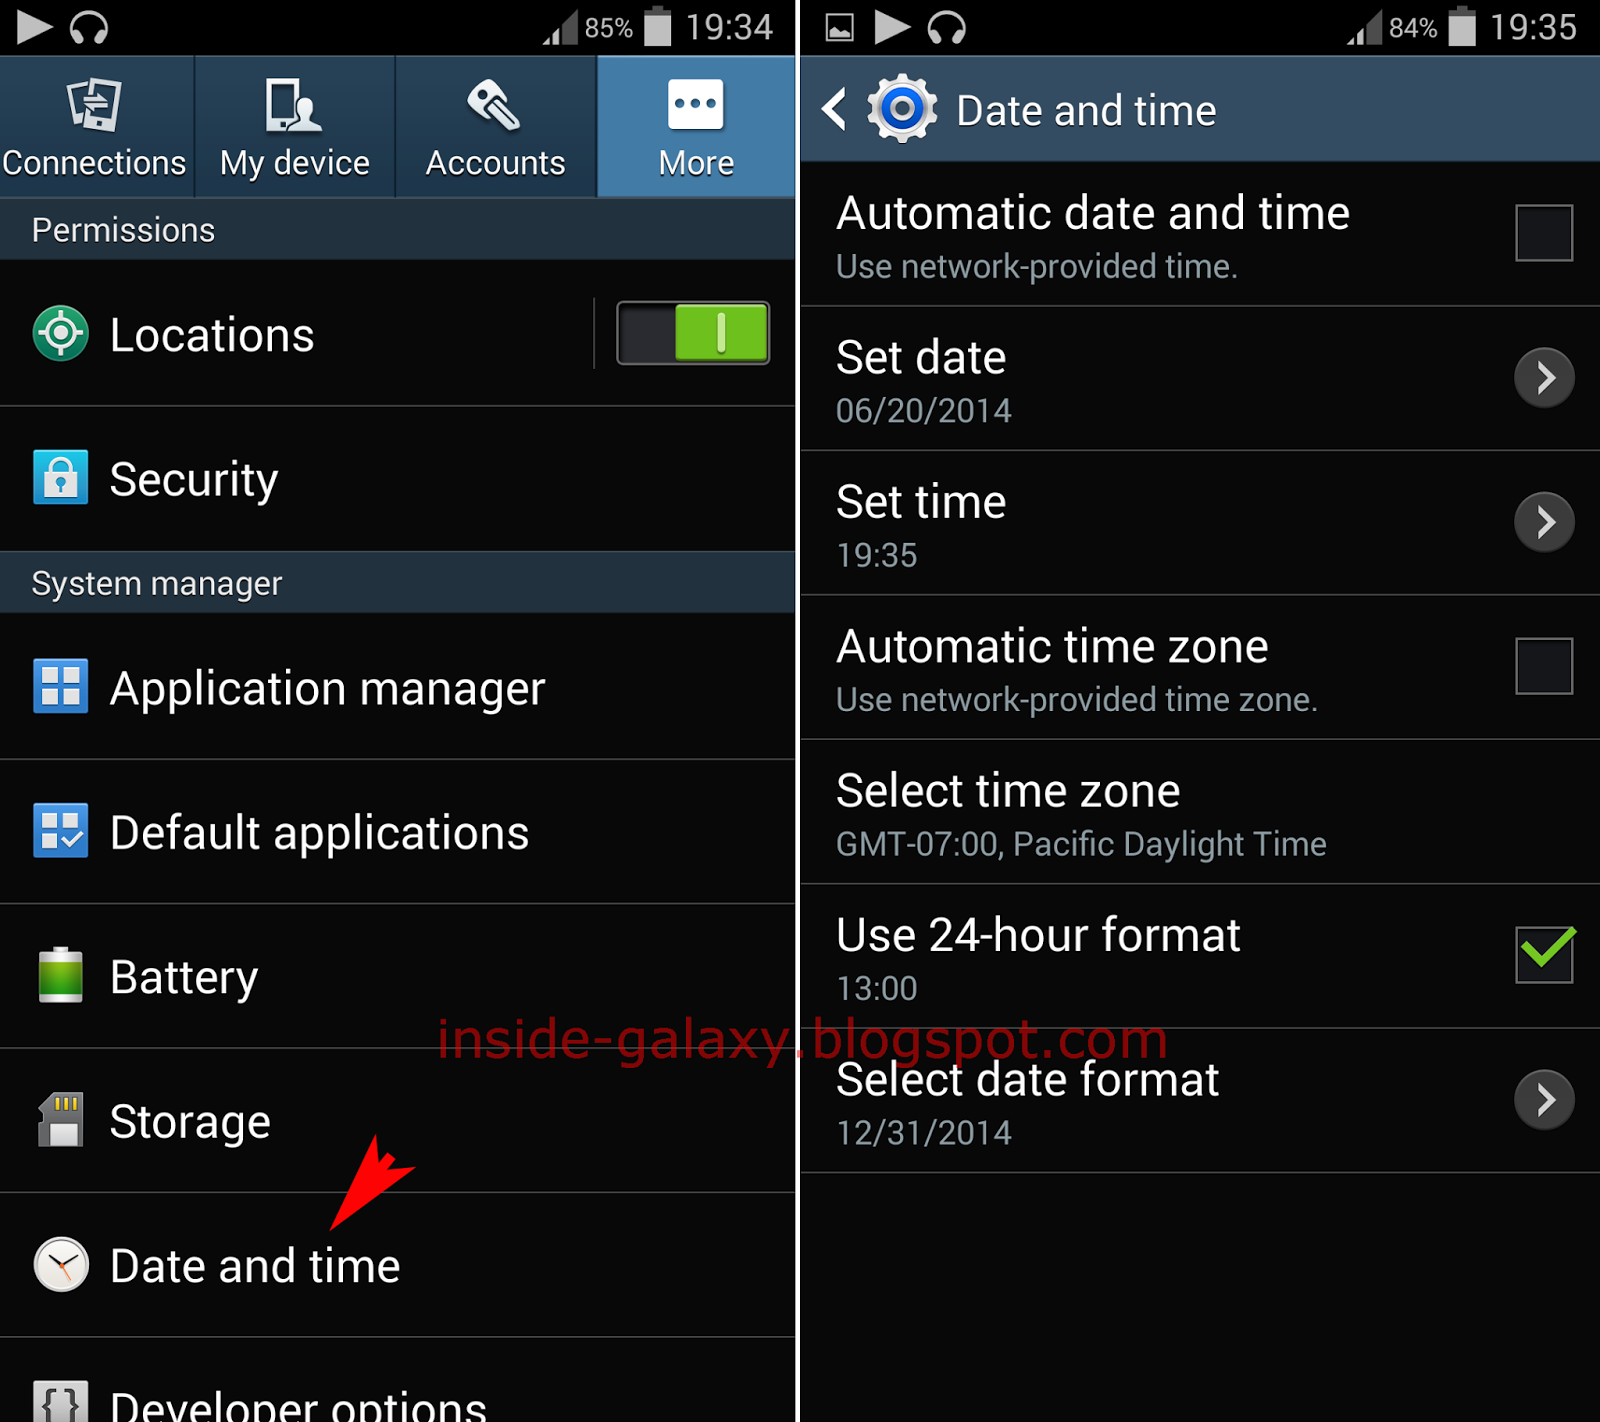 how to change image format on android